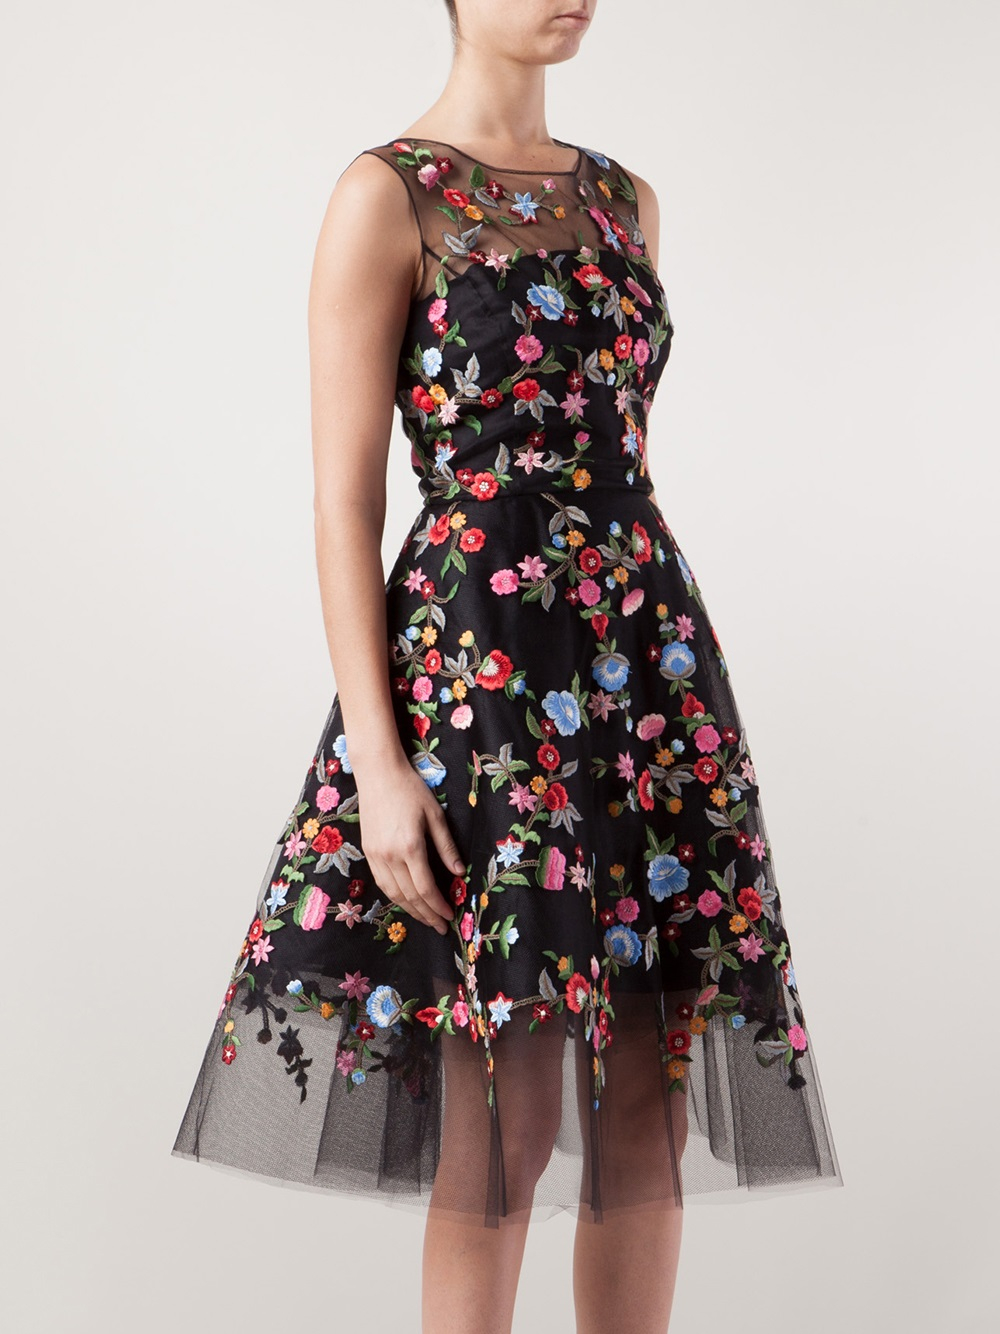 Designer Flower Dress